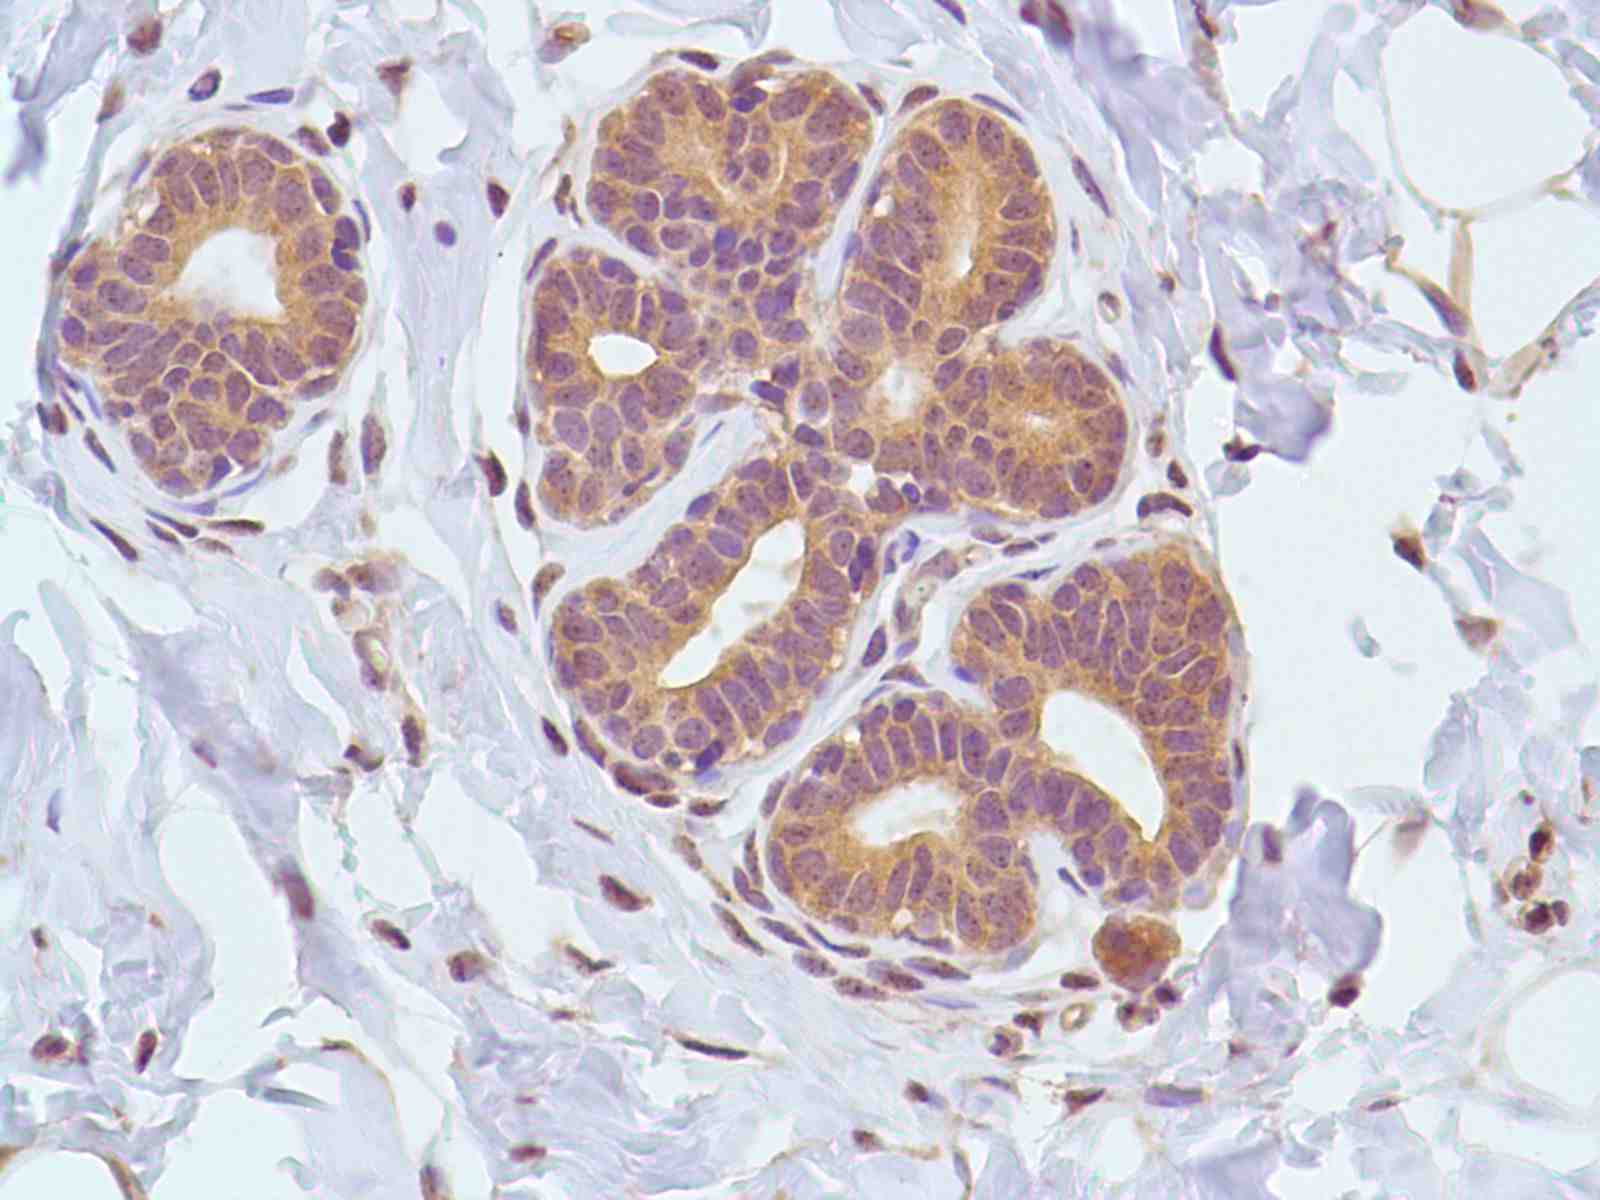 Human Breast stained with anti-Calpain antibody